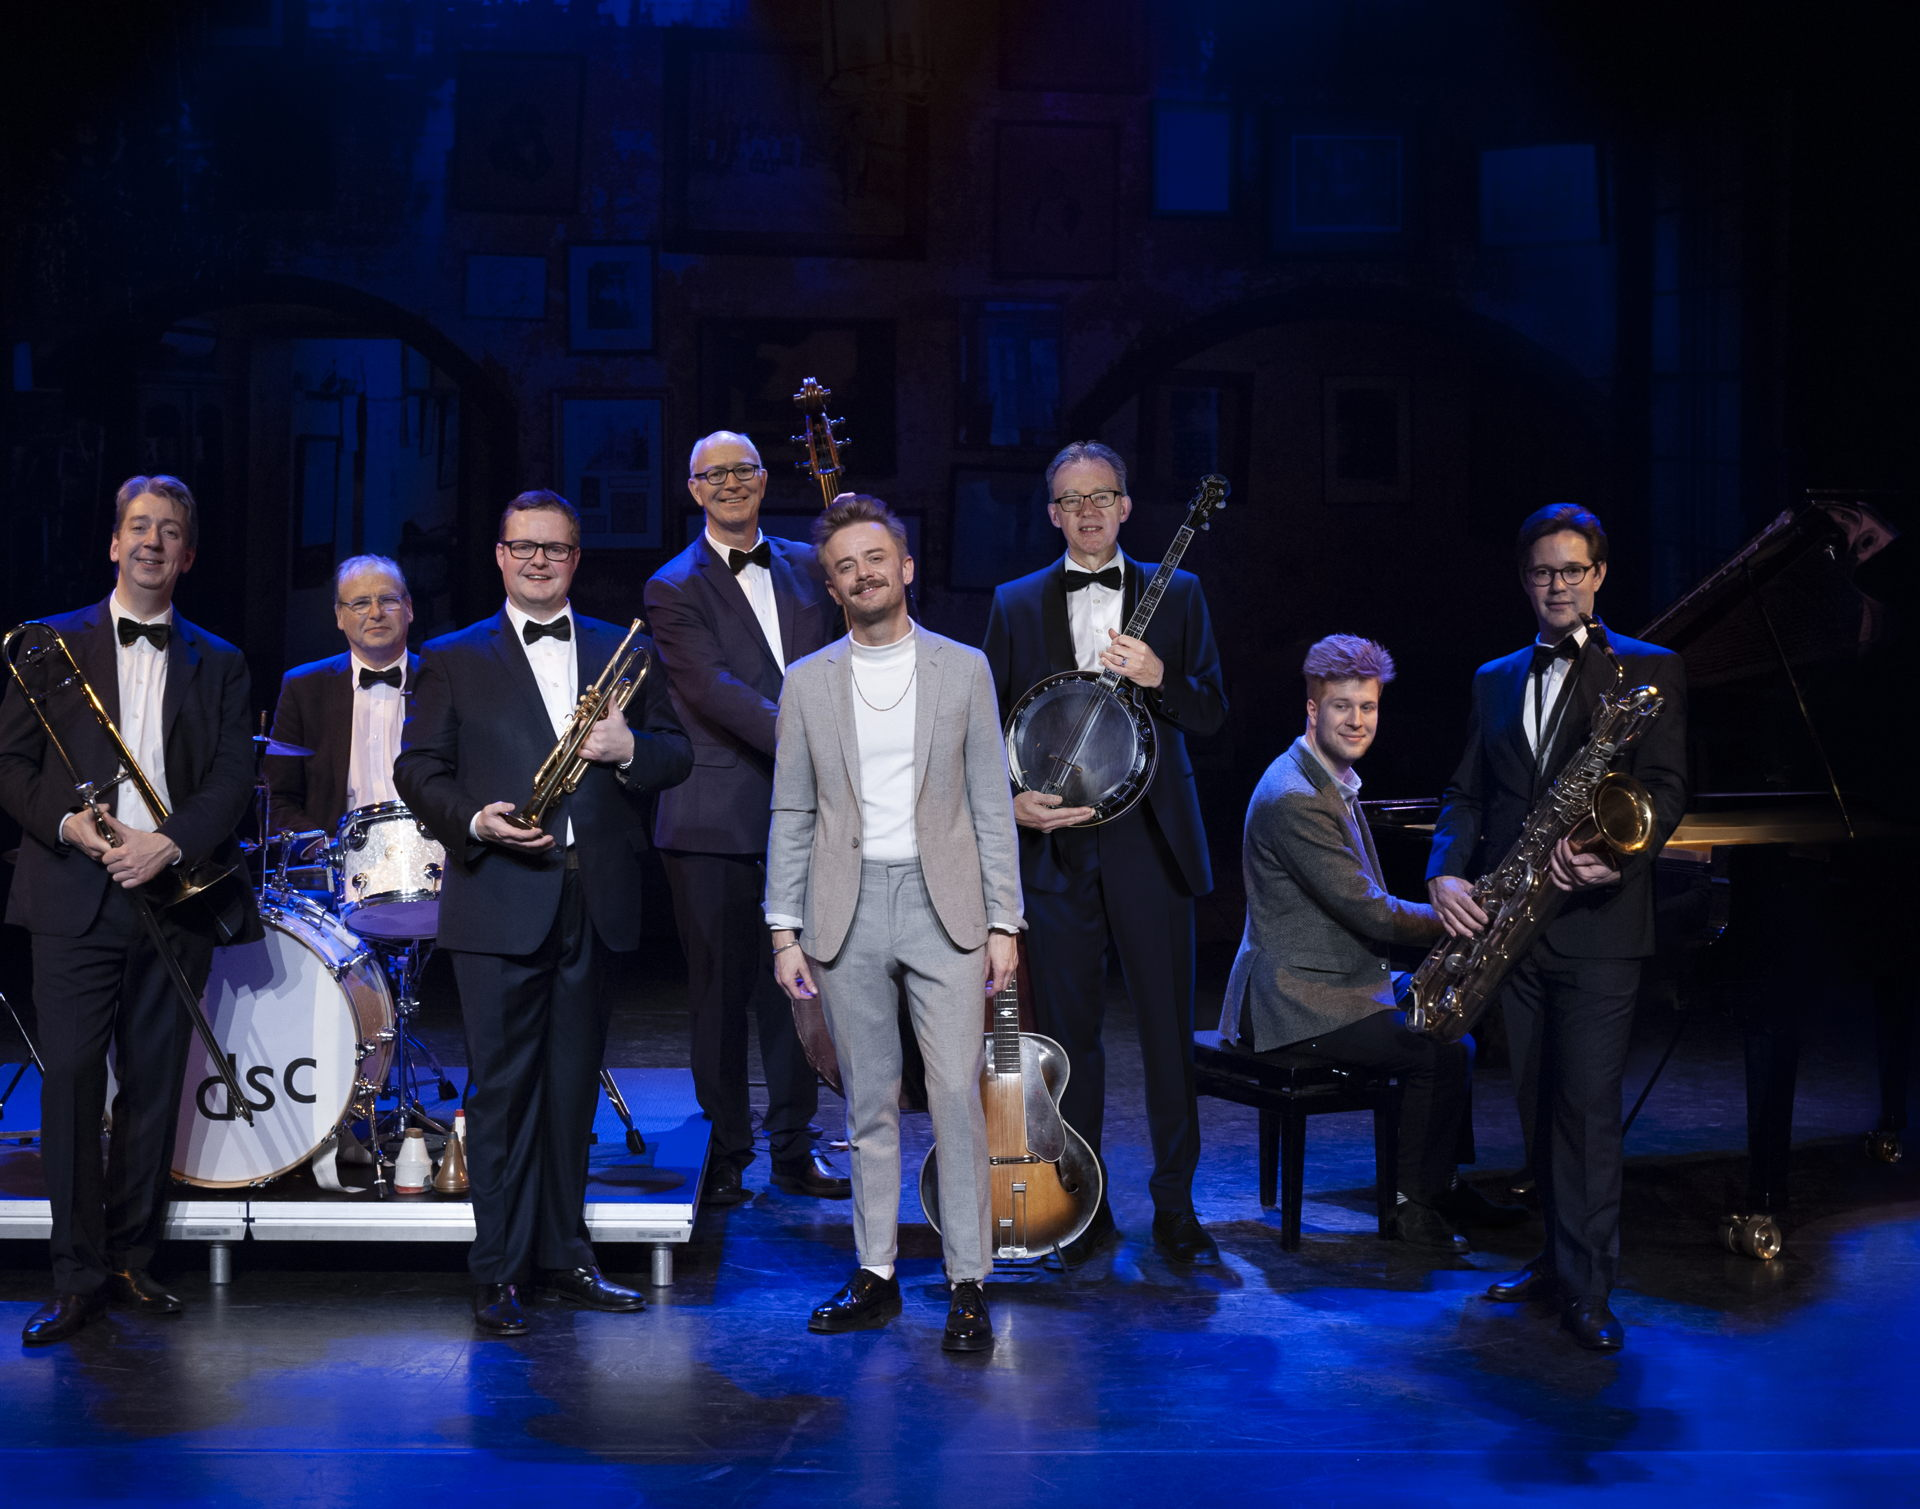 Wouter Hamel en Dutch Swing College Band